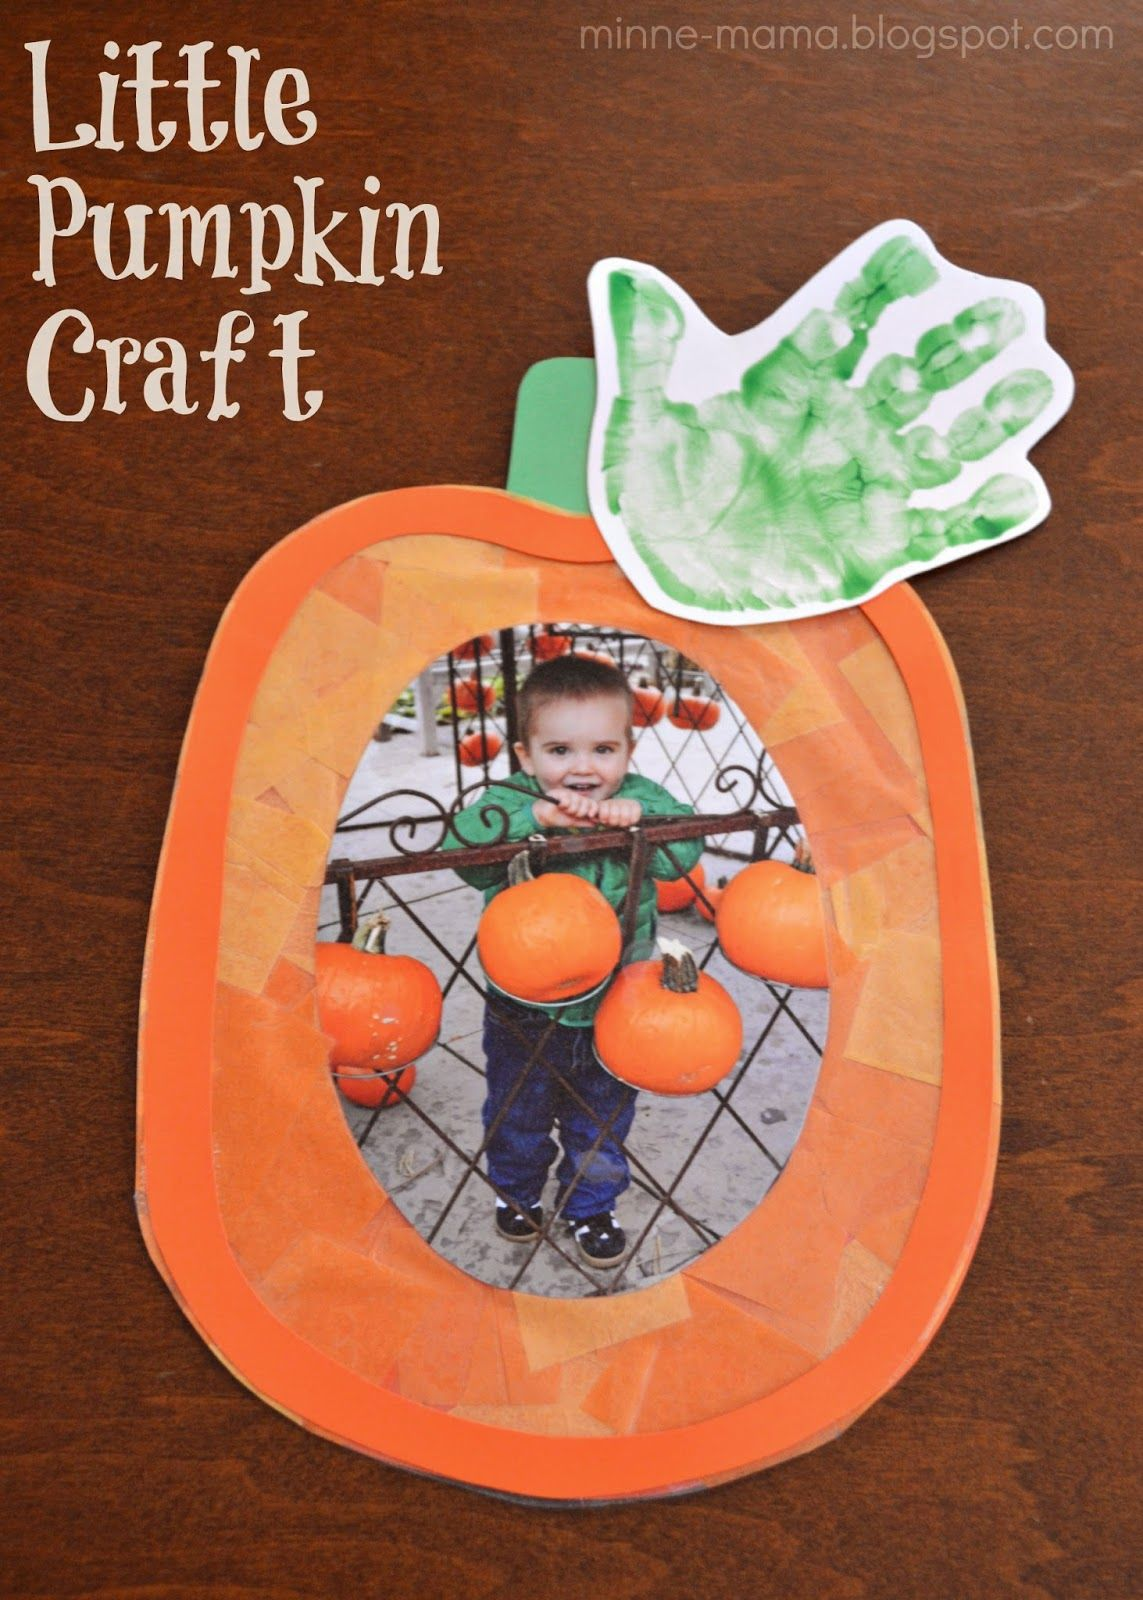 Little Pumpkin Craft is part of Pumpkin crafts - MinneMama is on Facebook! 'Like' us to stay updated on our fun crafts and activities!    Thank you for stopping by!     This fun craft was